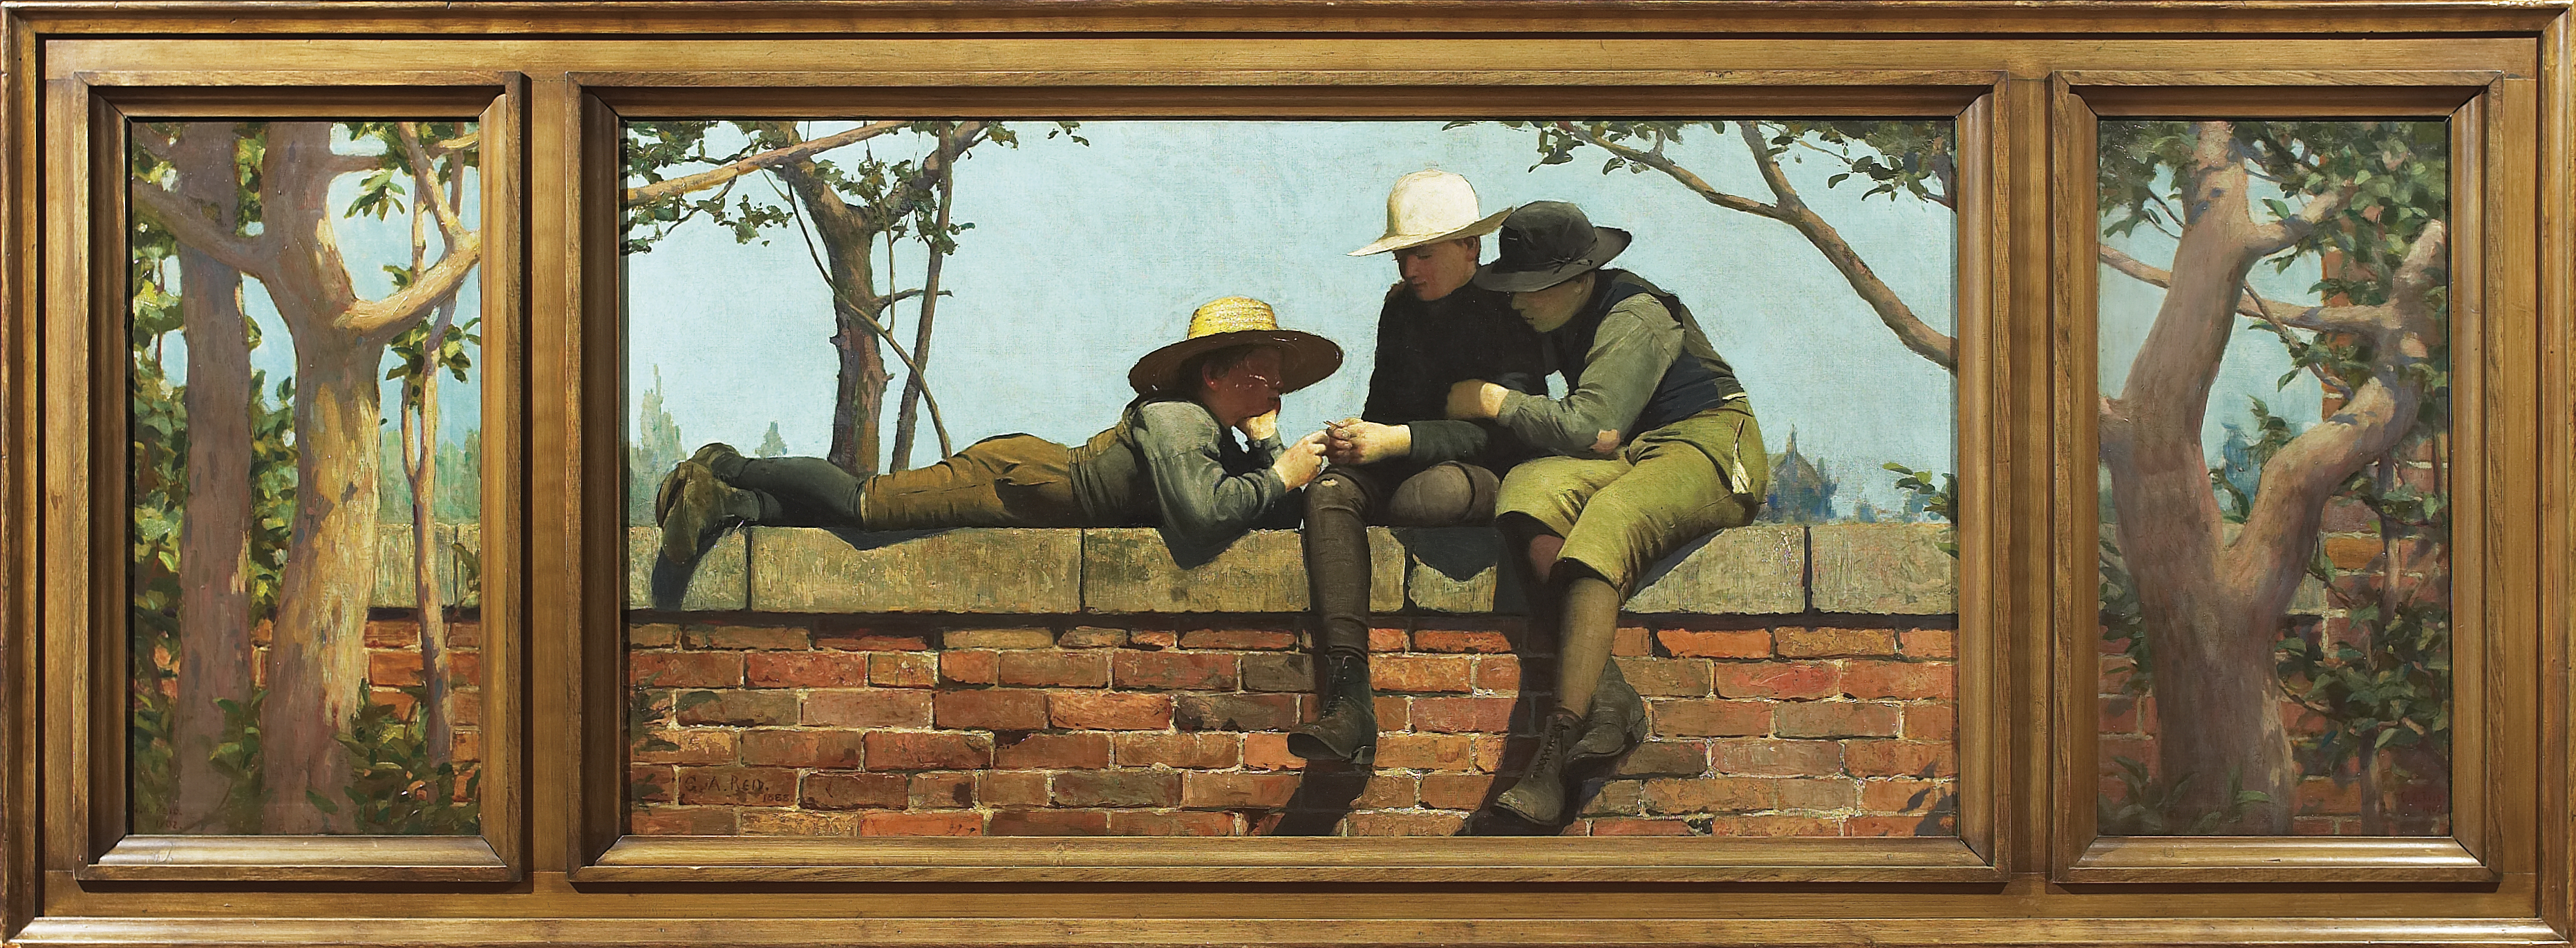 This work is divided into three parts. The centre panel pictures three boys on a low wall, two sitting and one lying down. Two smaller side panels show trees whose branches stretch into the centre panel.